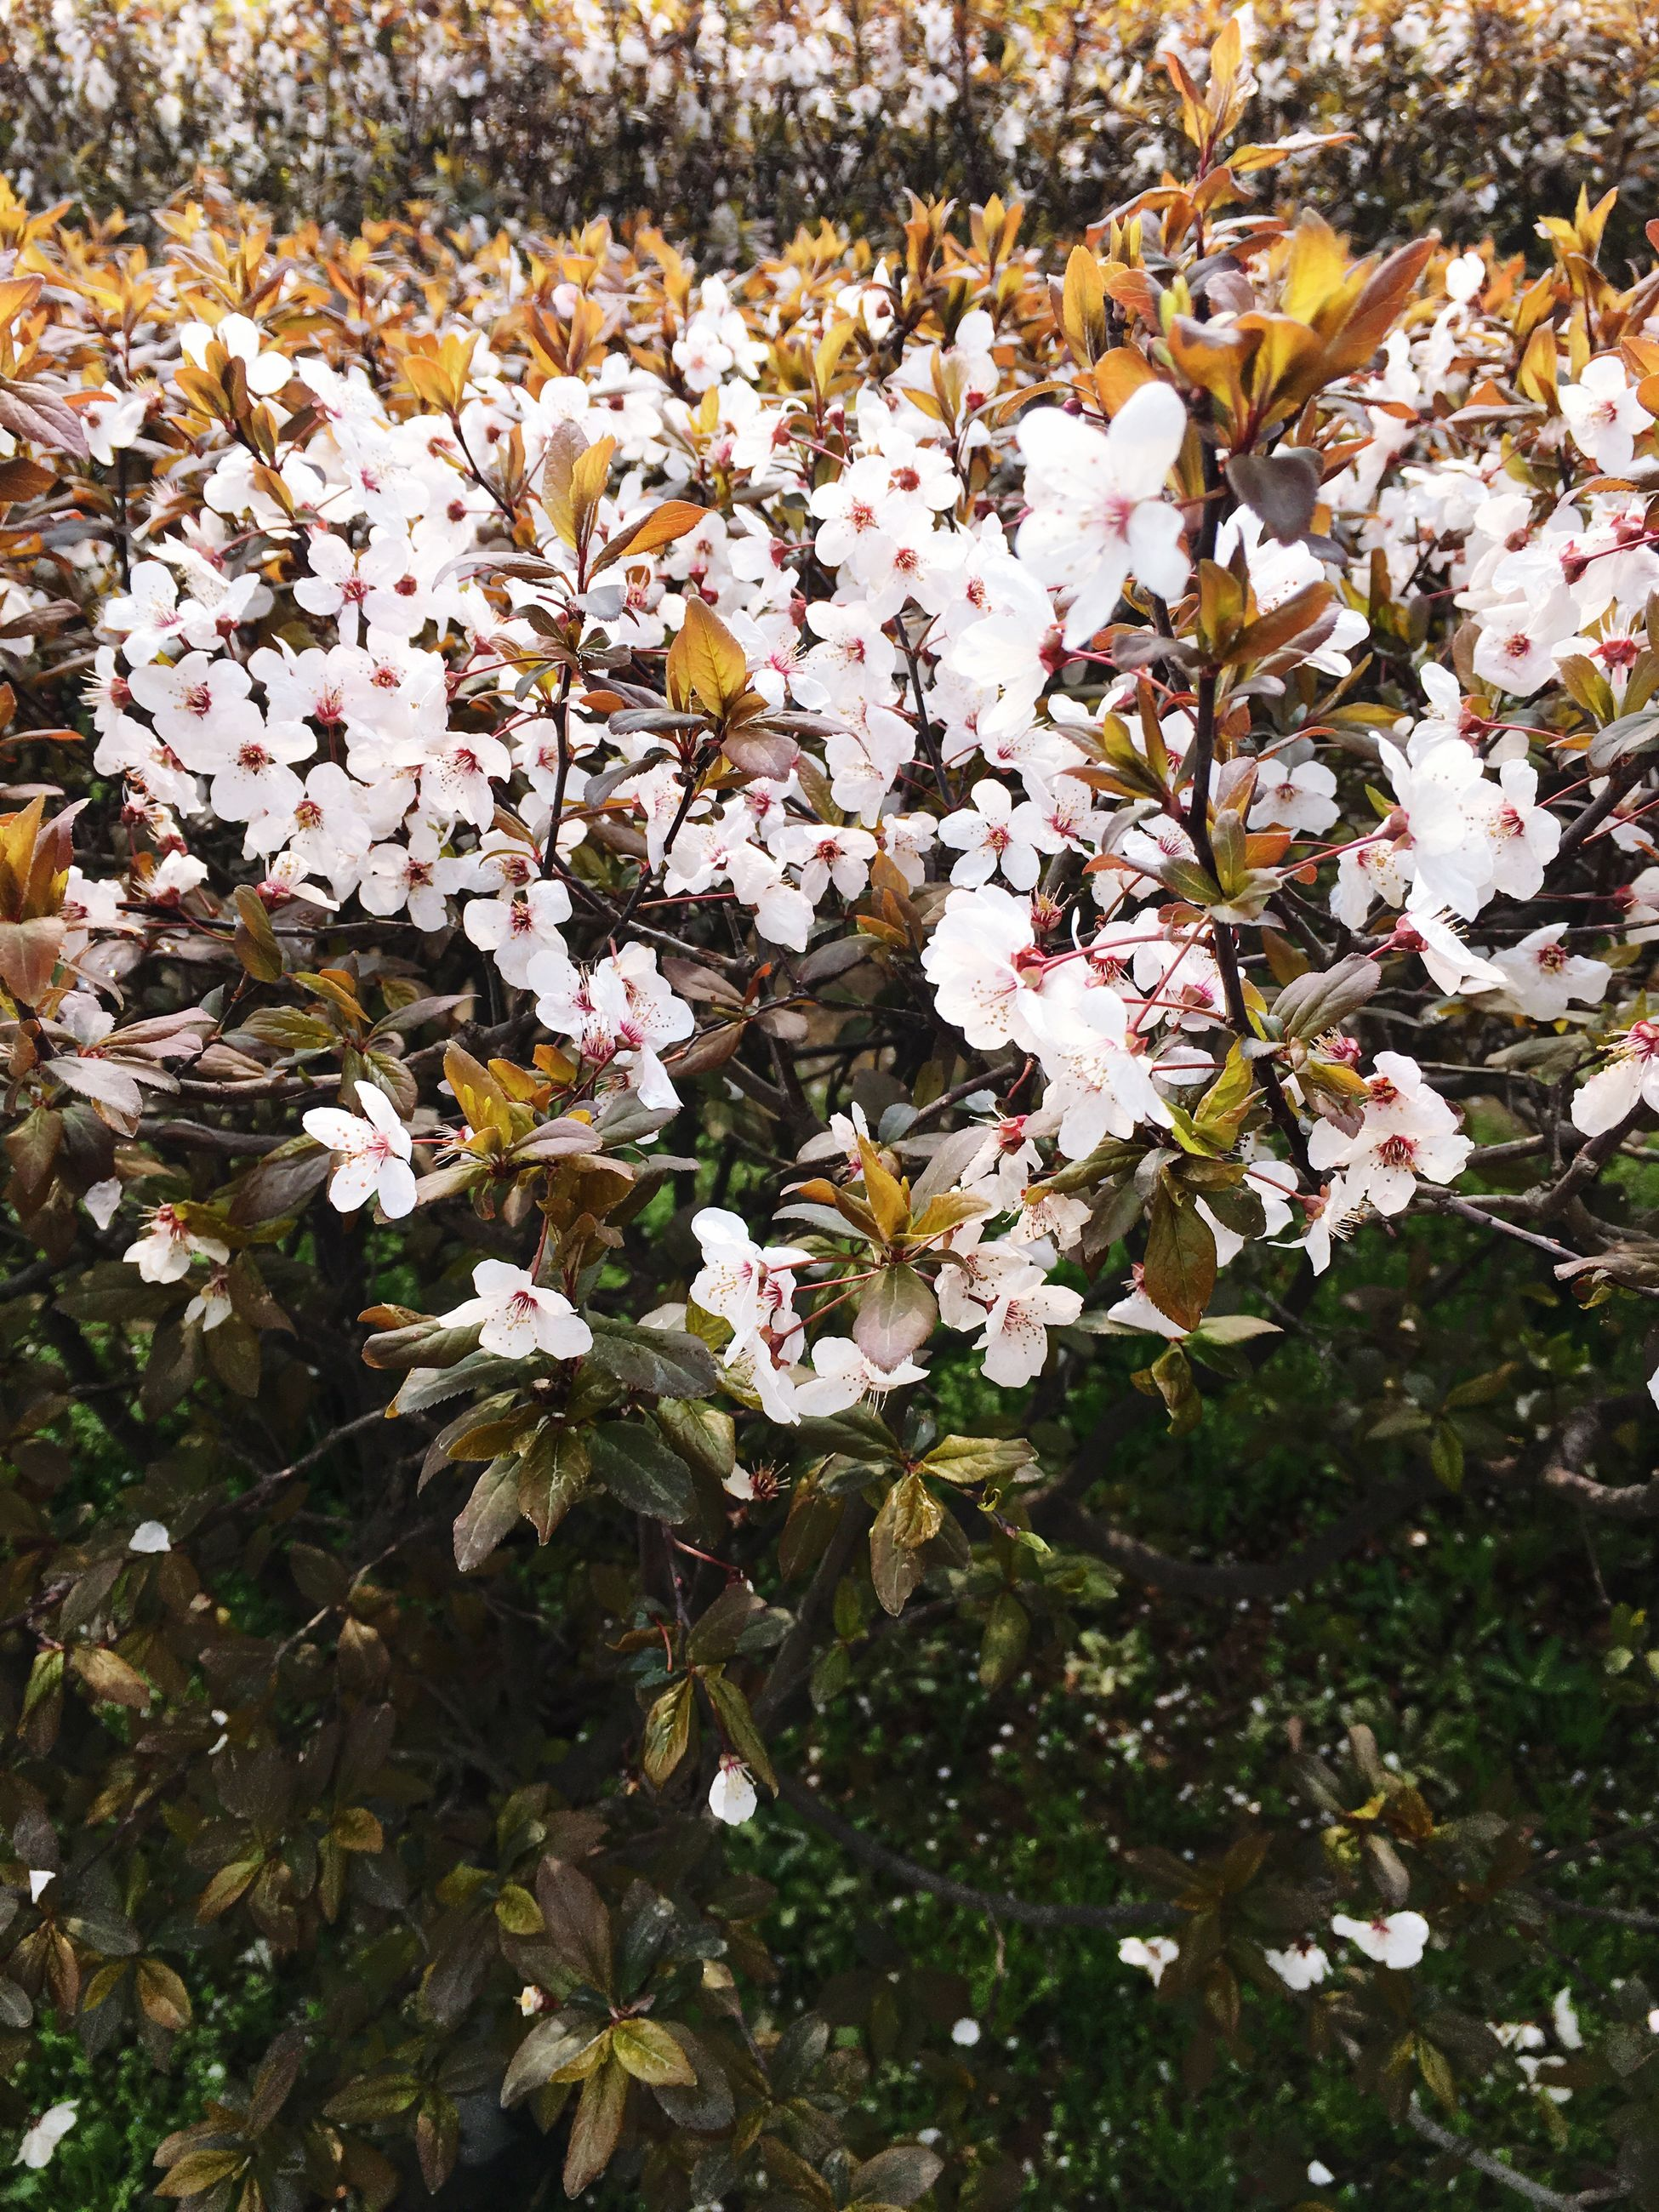 flower, fragility, nature, beauty in nature, growth, season, high angle view, freshness, field, petal, autumn, white color, abundance, blooming, leaf, change, day, blossom, park - man made space, tree